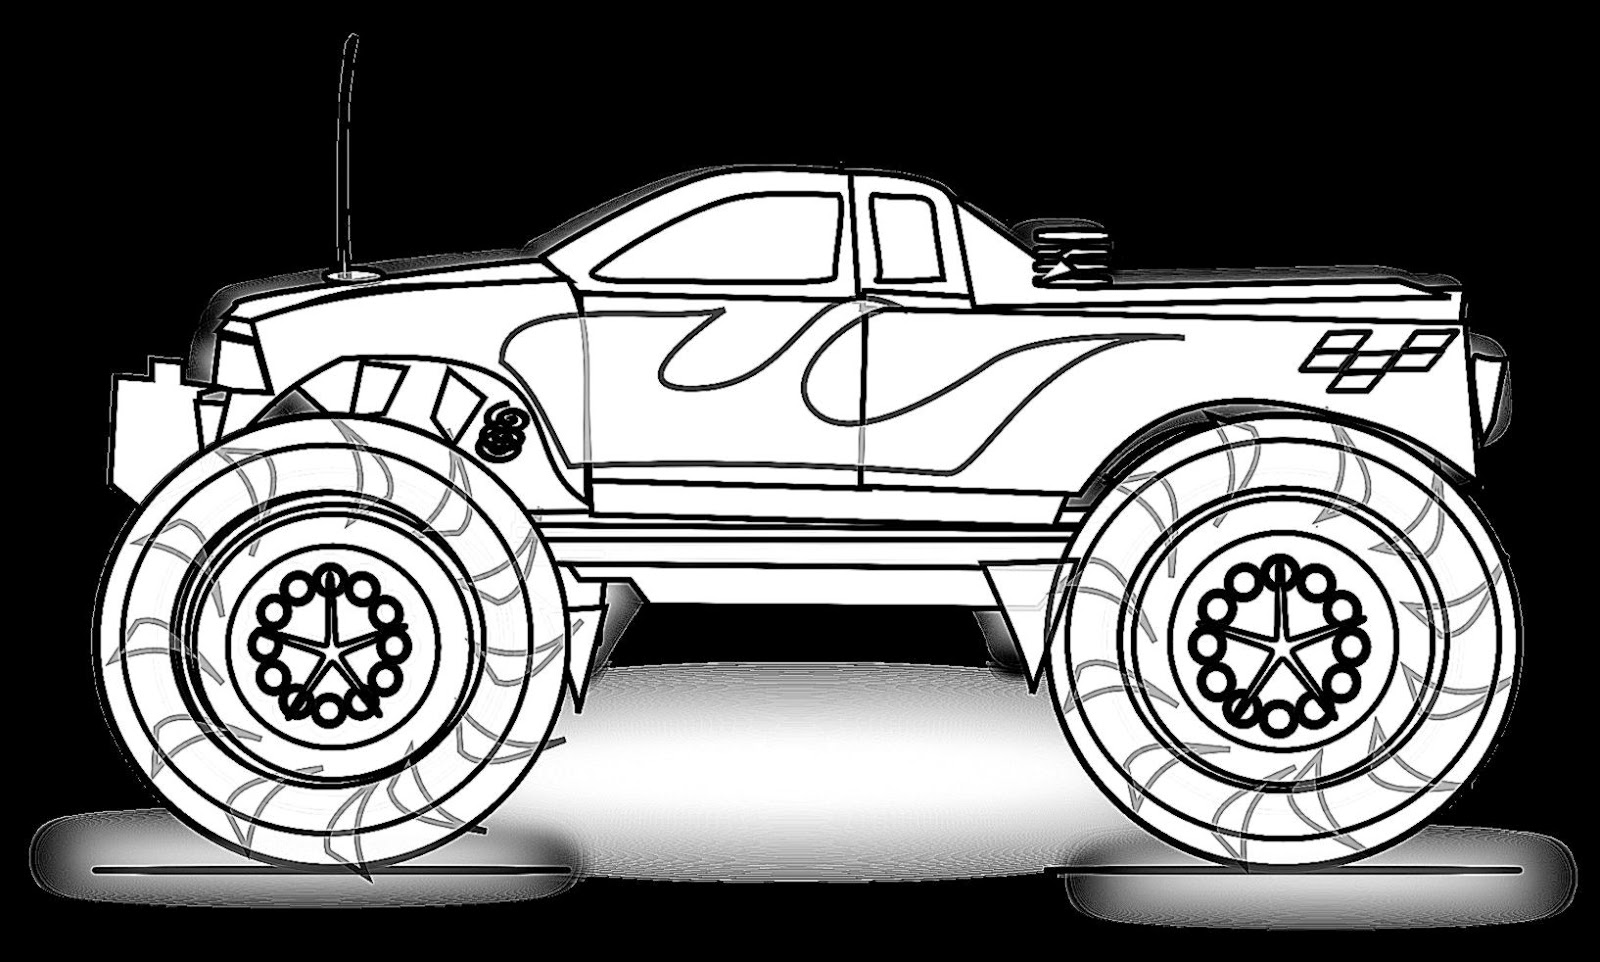 coloring pages of monster trucks how to draw monster jam truck coloring pages color luna of monster pages coloring trucks